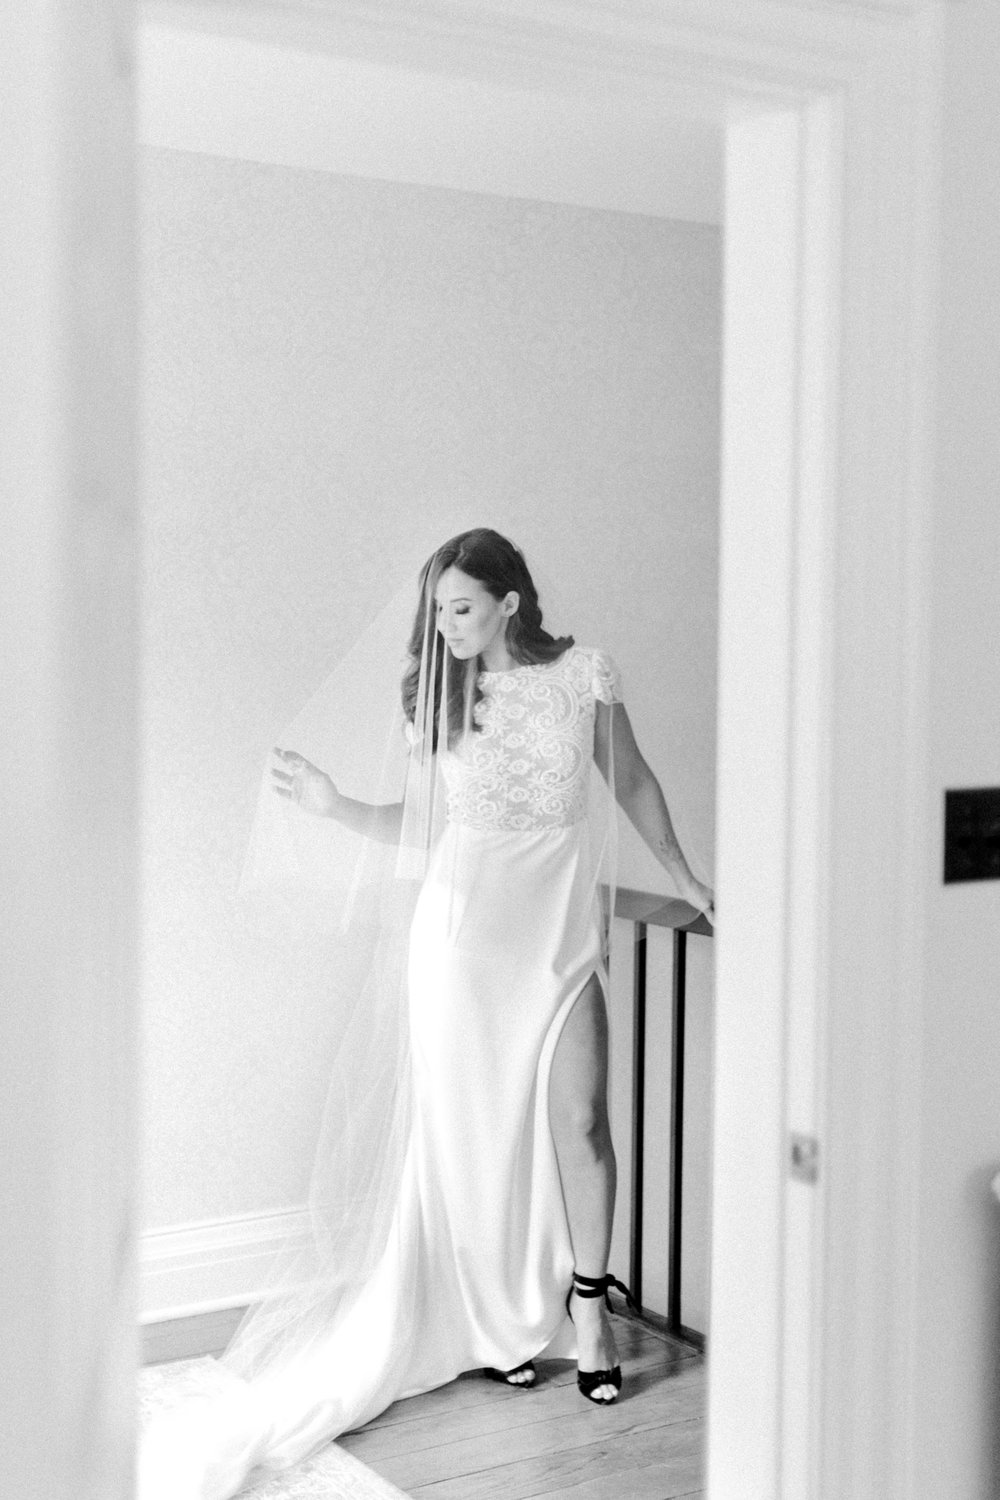 kurtz-gracewood-wedding-soft-airy-photographer-white-book-danielle-carmen-2.jpg